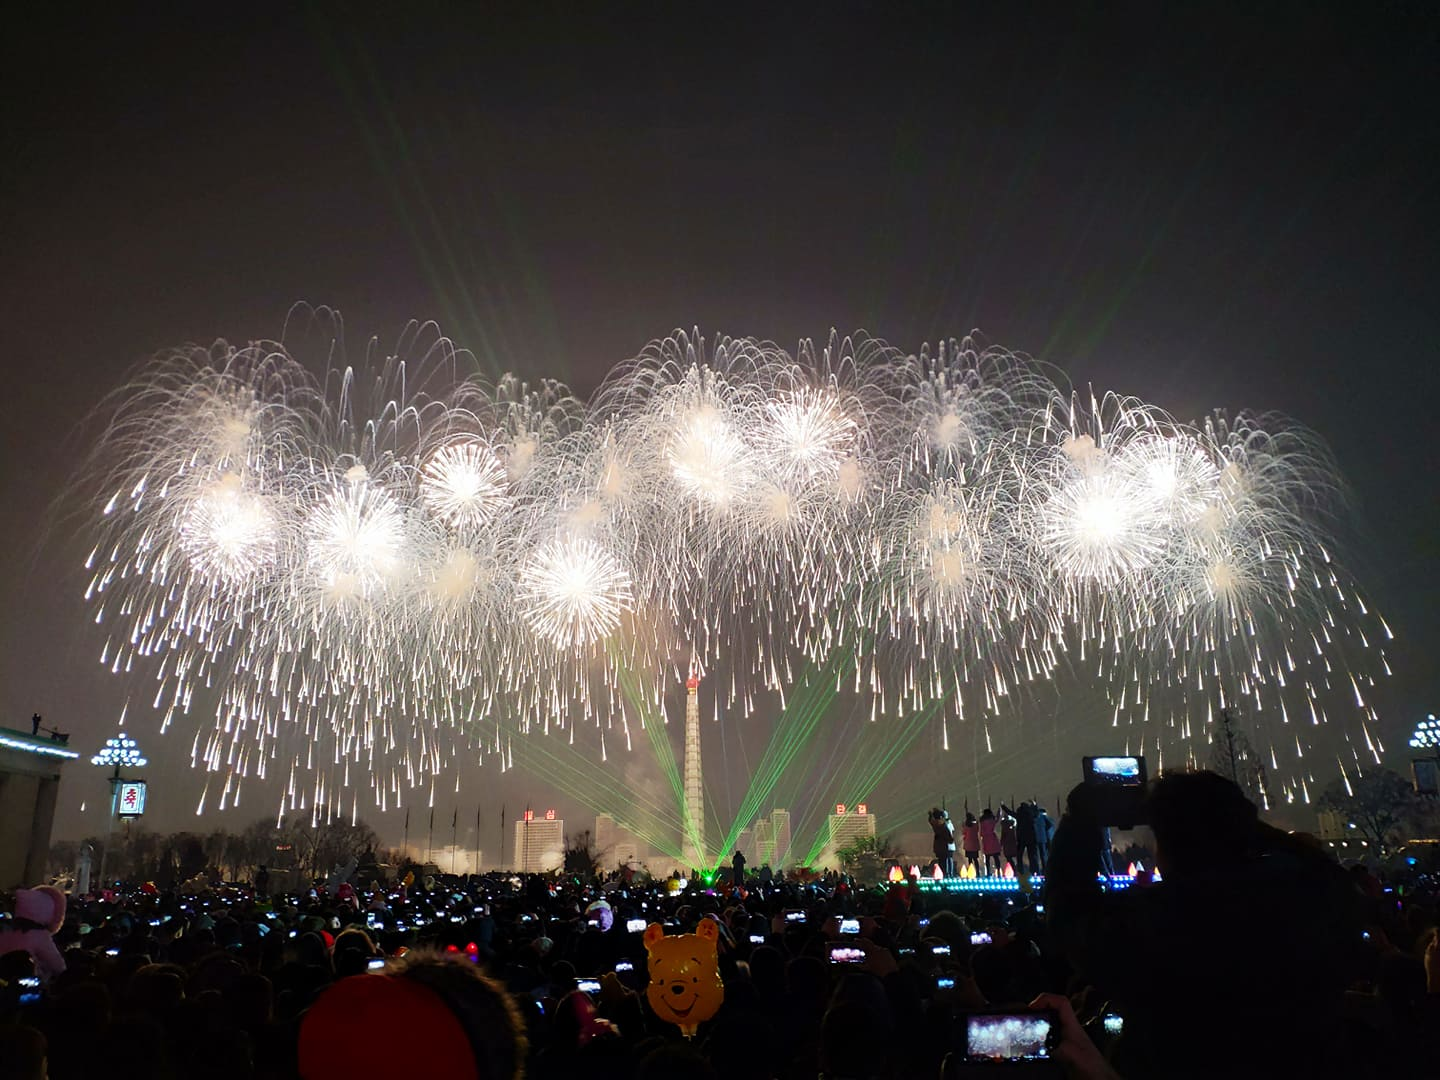 Fireworks over the Taedonggang river for New Year's celebrations in North Korea